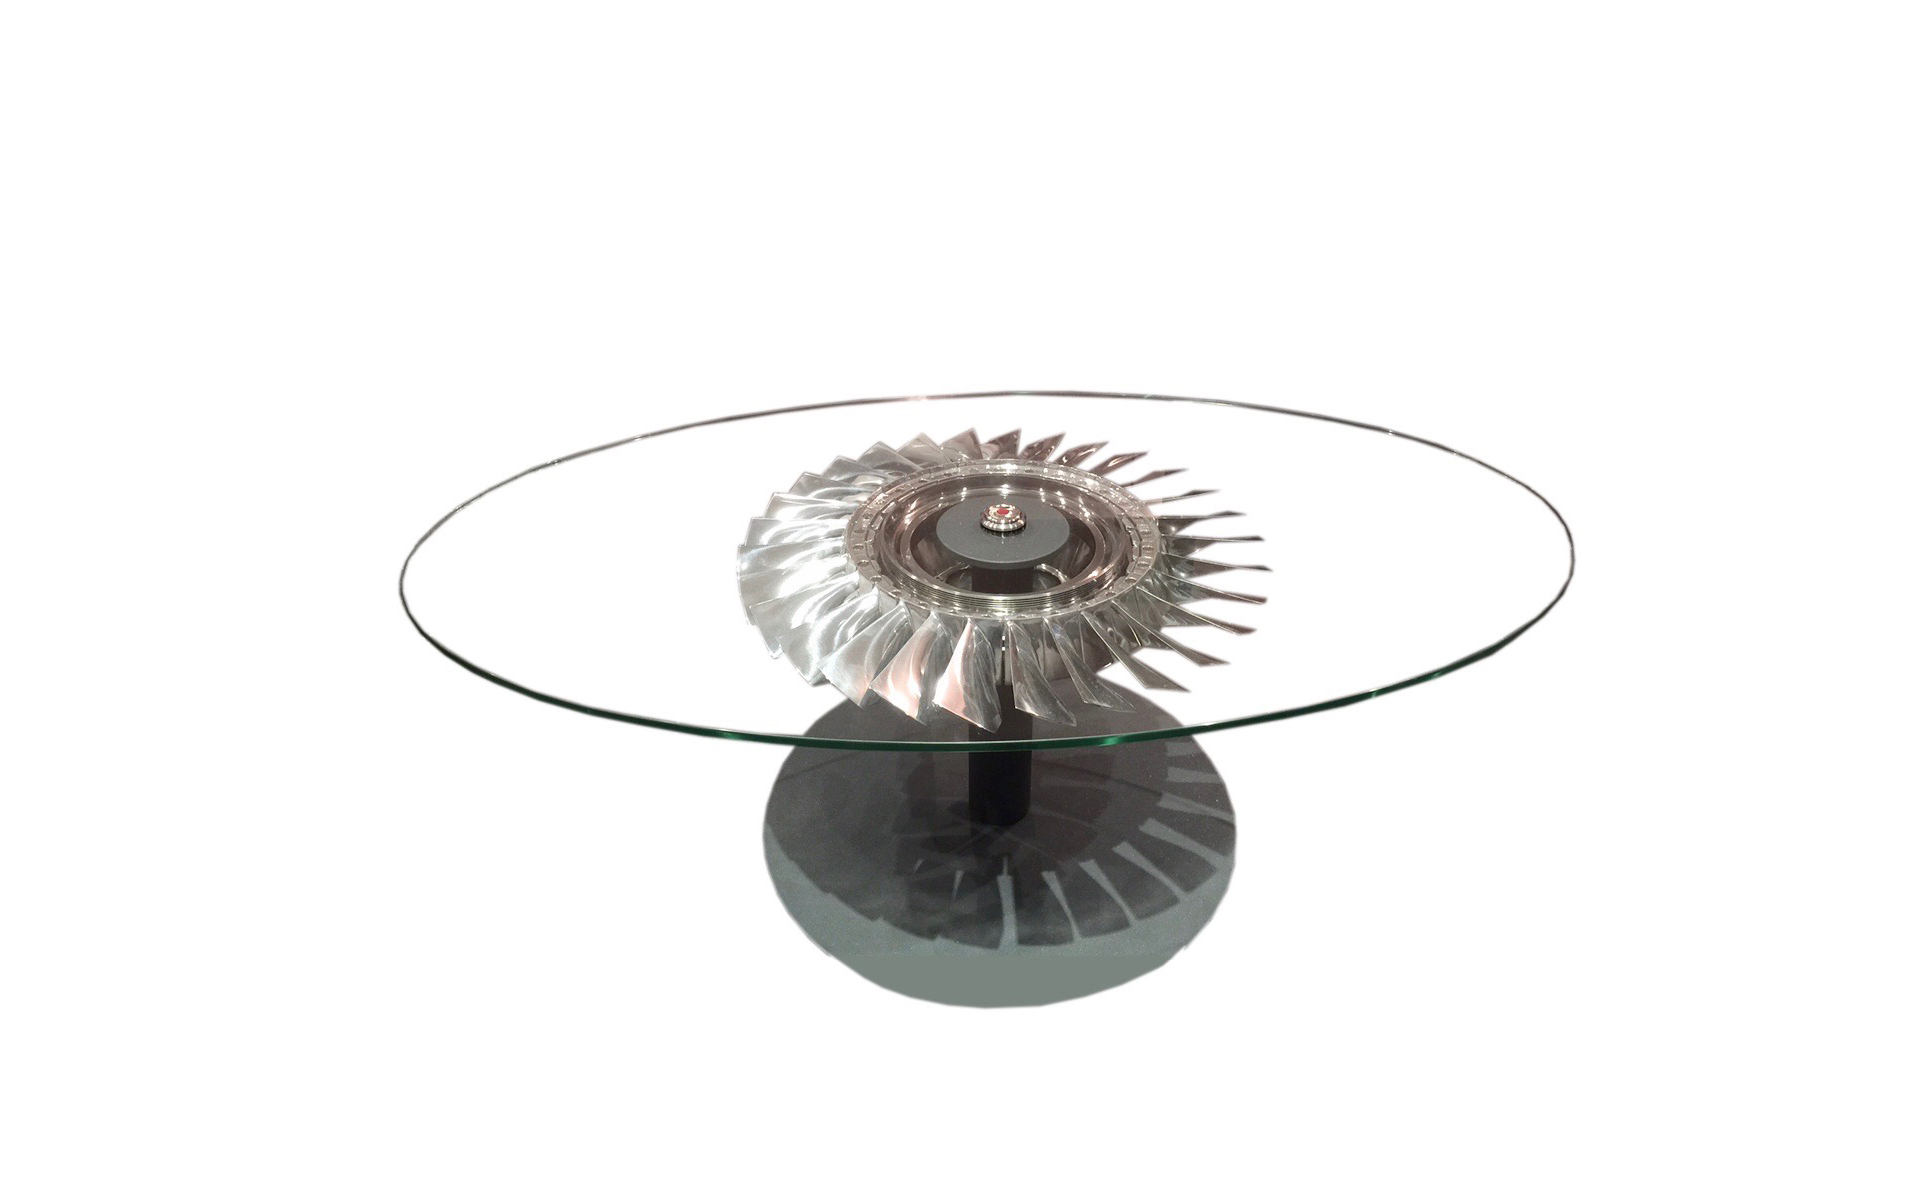 Table turbine sans fond 17.08.06